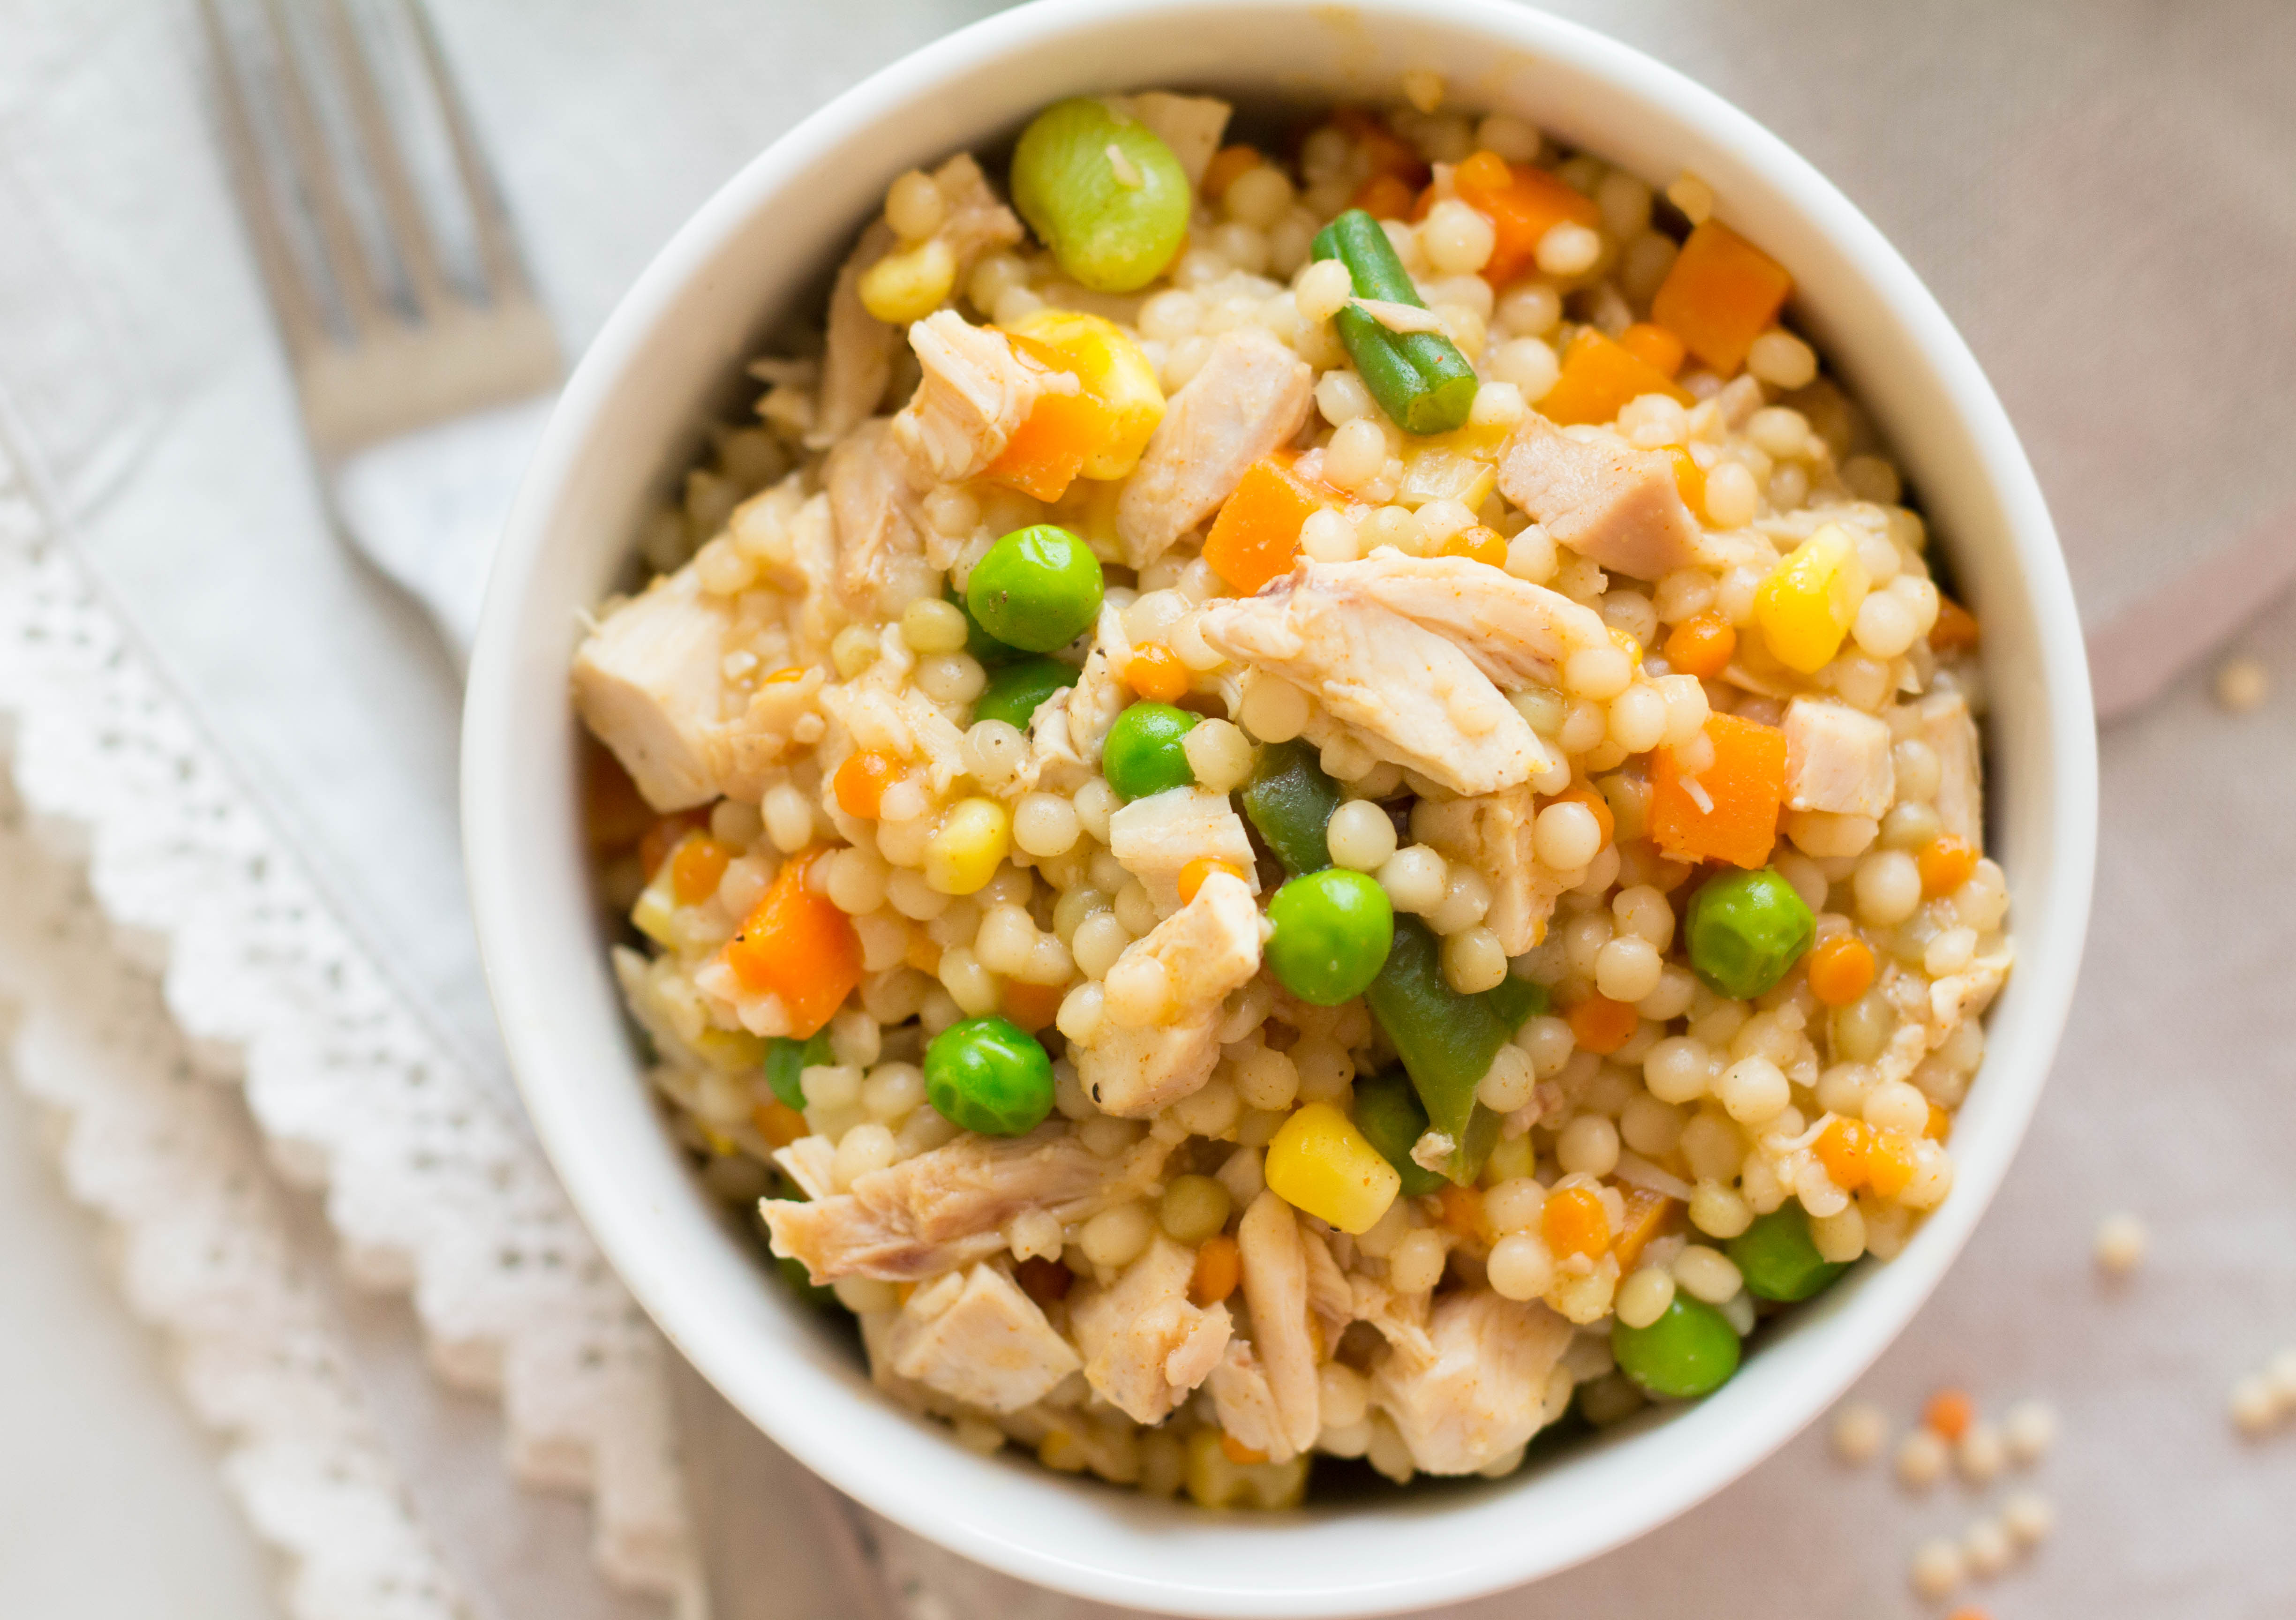 Pearled Couscous with Chicken & Mixed Veggies - Zen & Spice